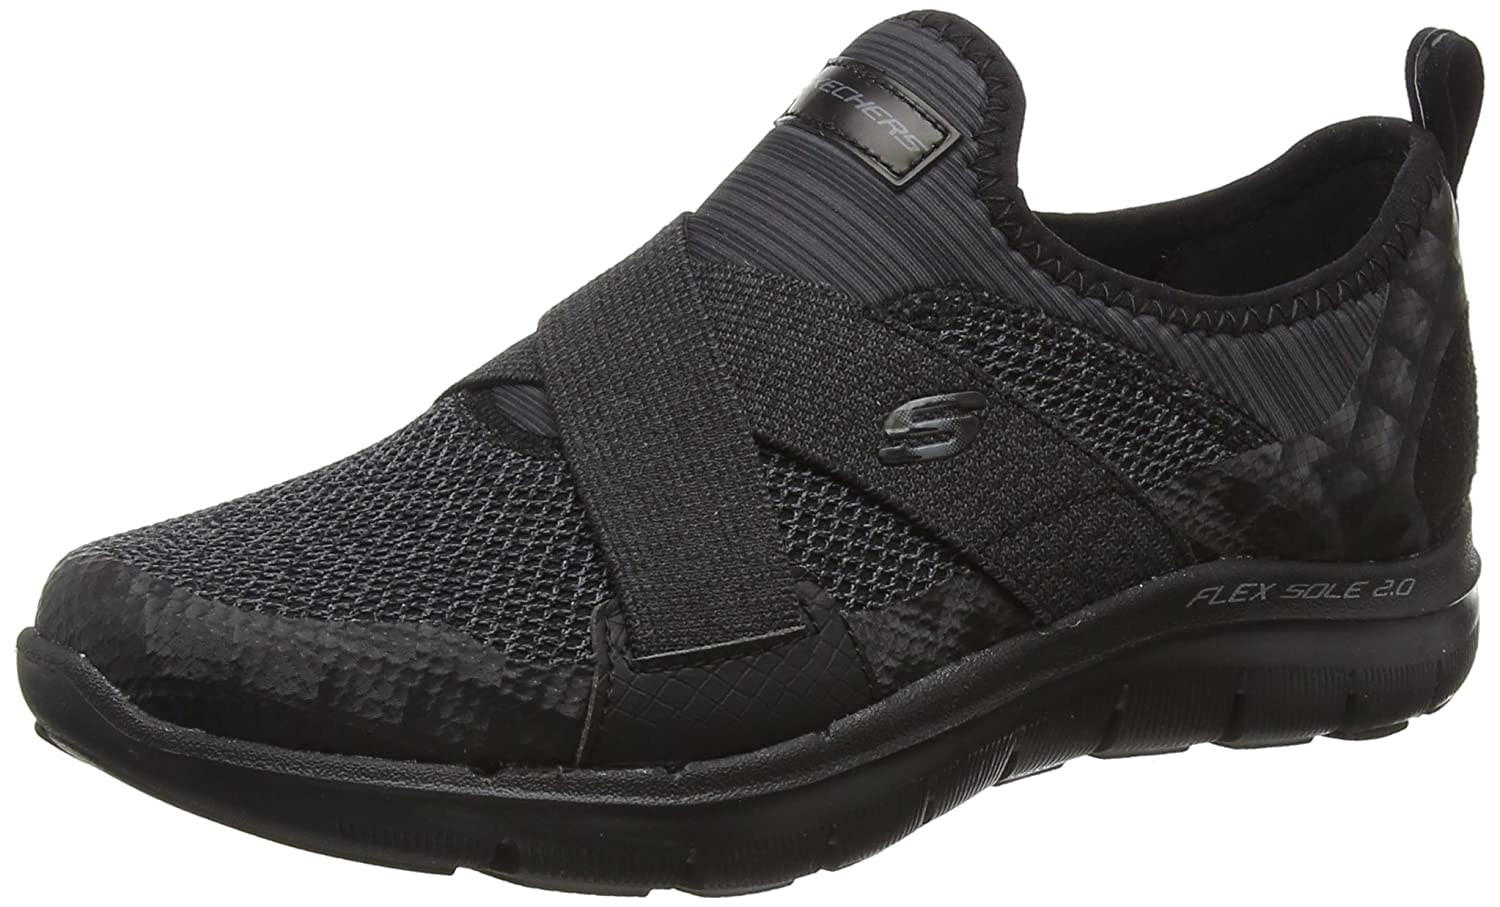 Skechers Women's Flex Appeal New Image Sneaker B01ET25MB6 6.5 B(M) US|Black